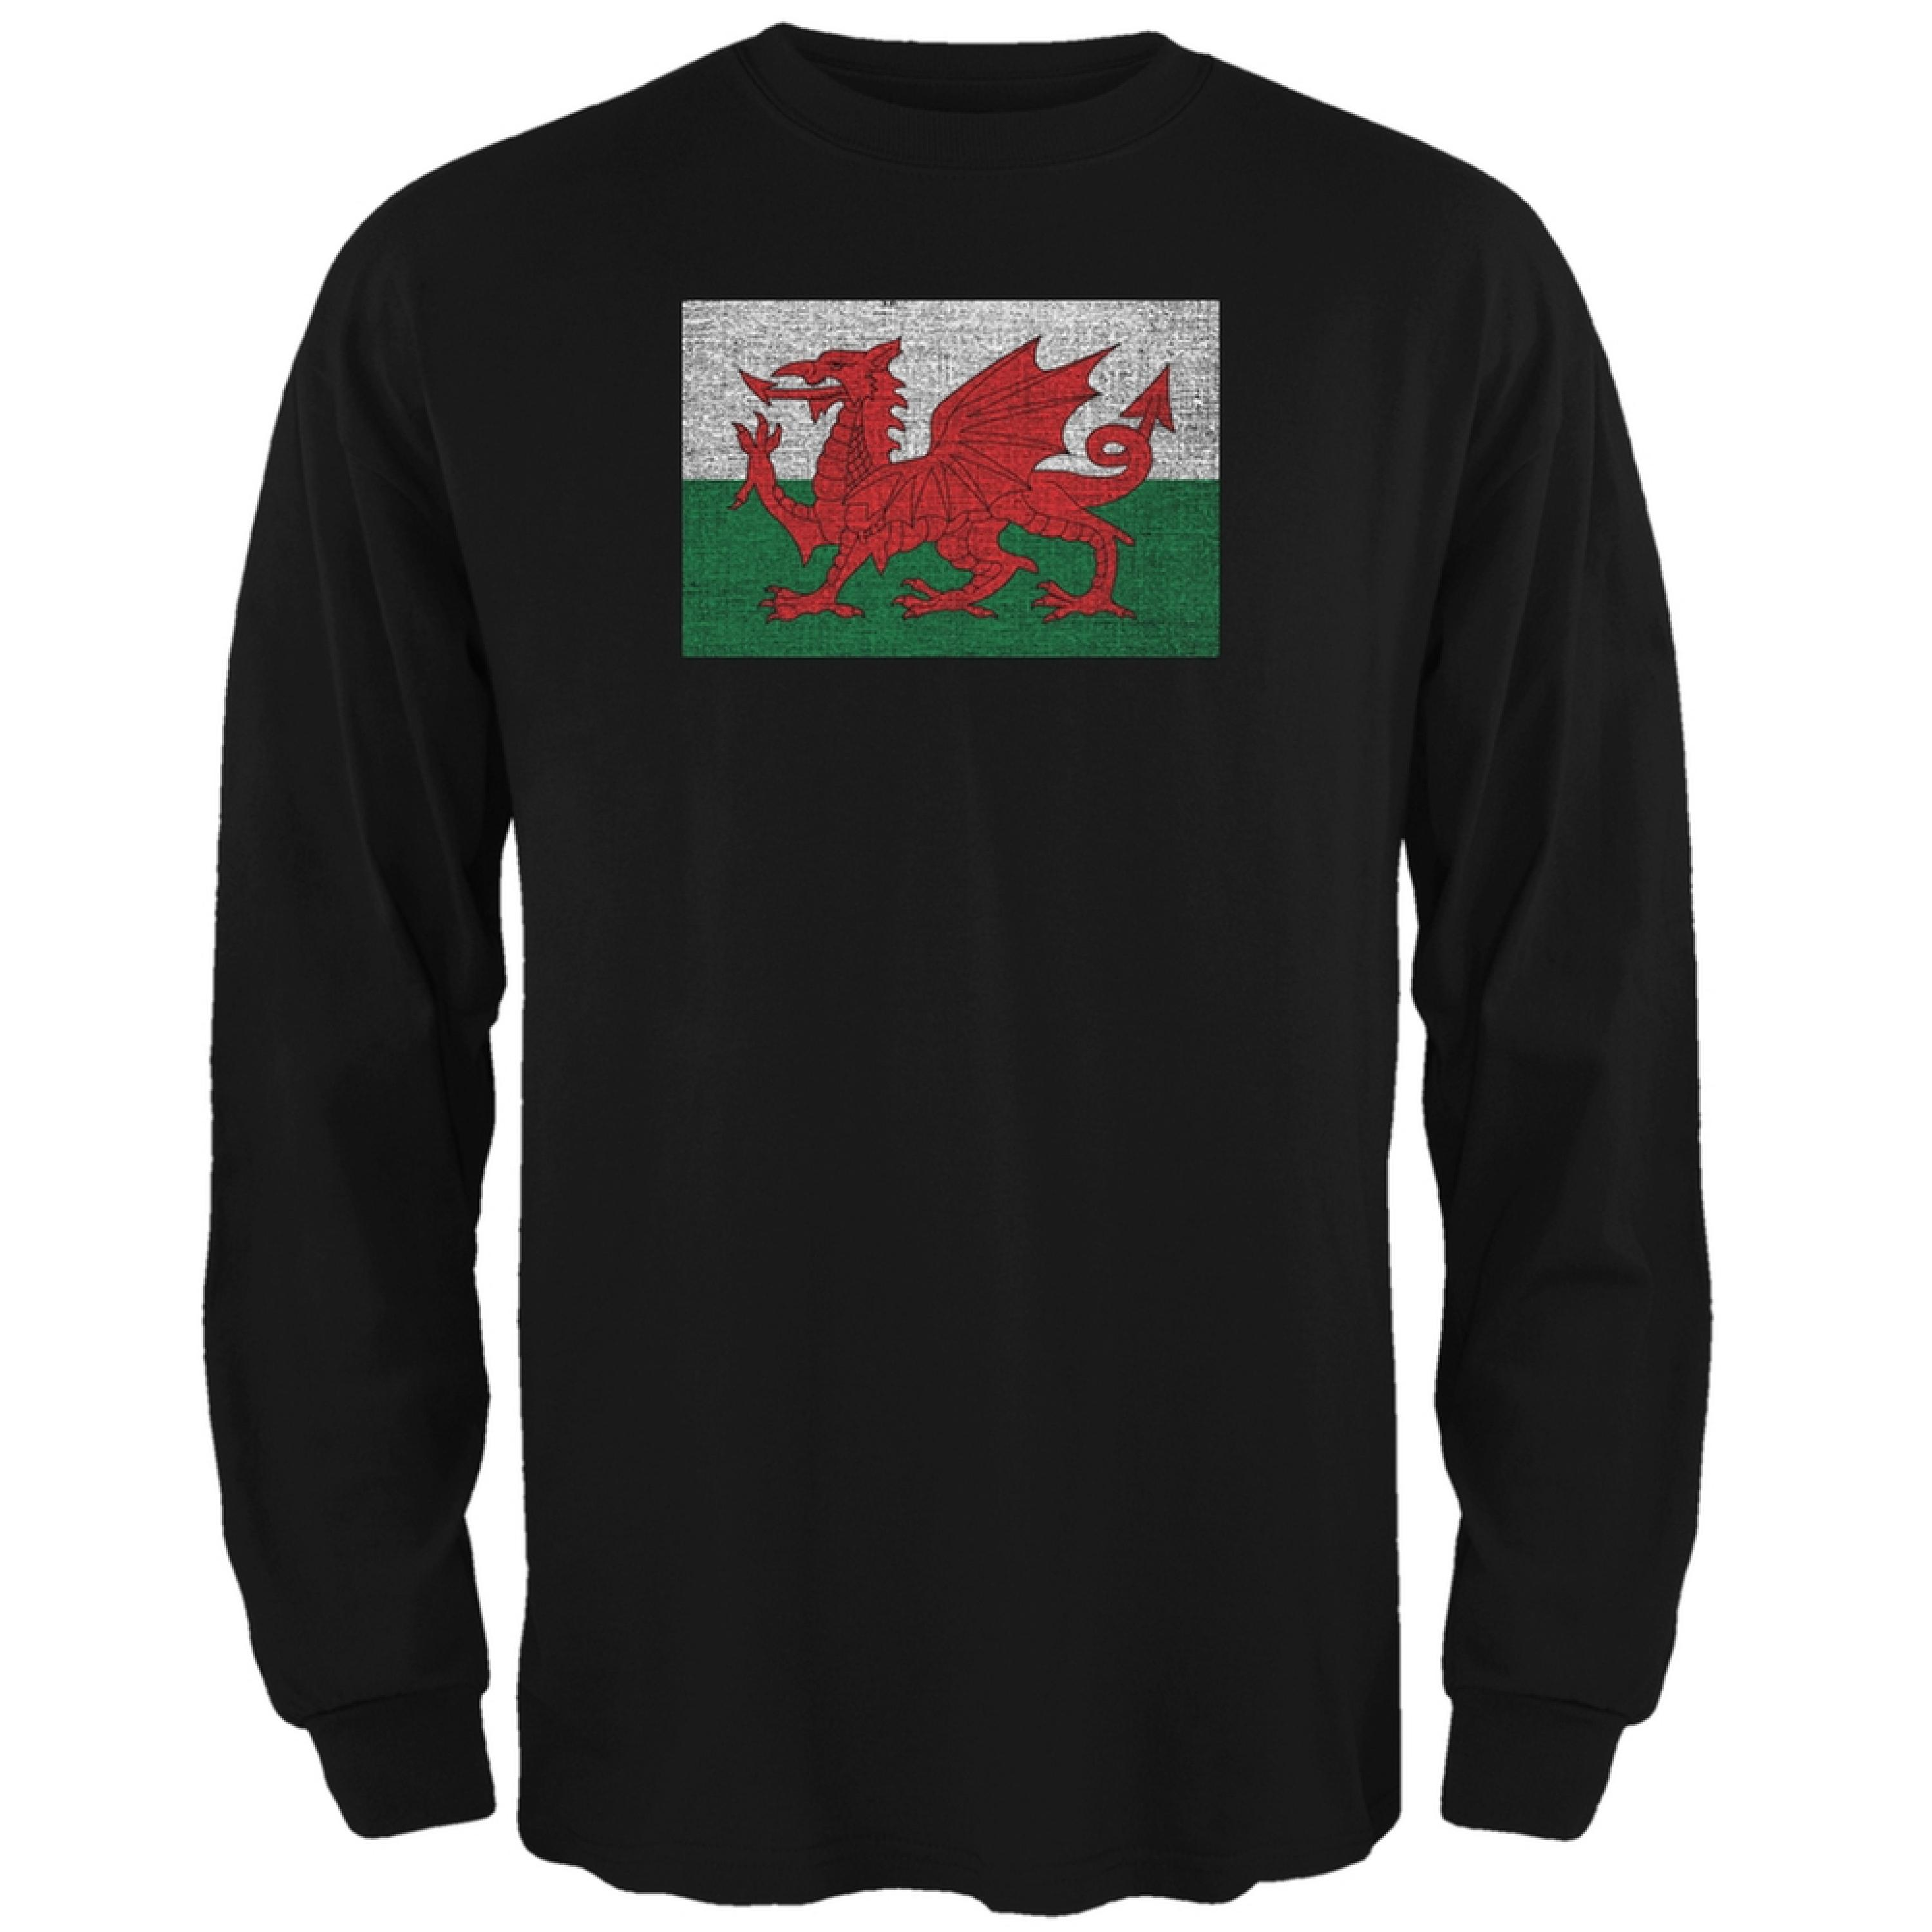 Welsh Flag Distressed Black Adult Long Sleeve T-Shirt